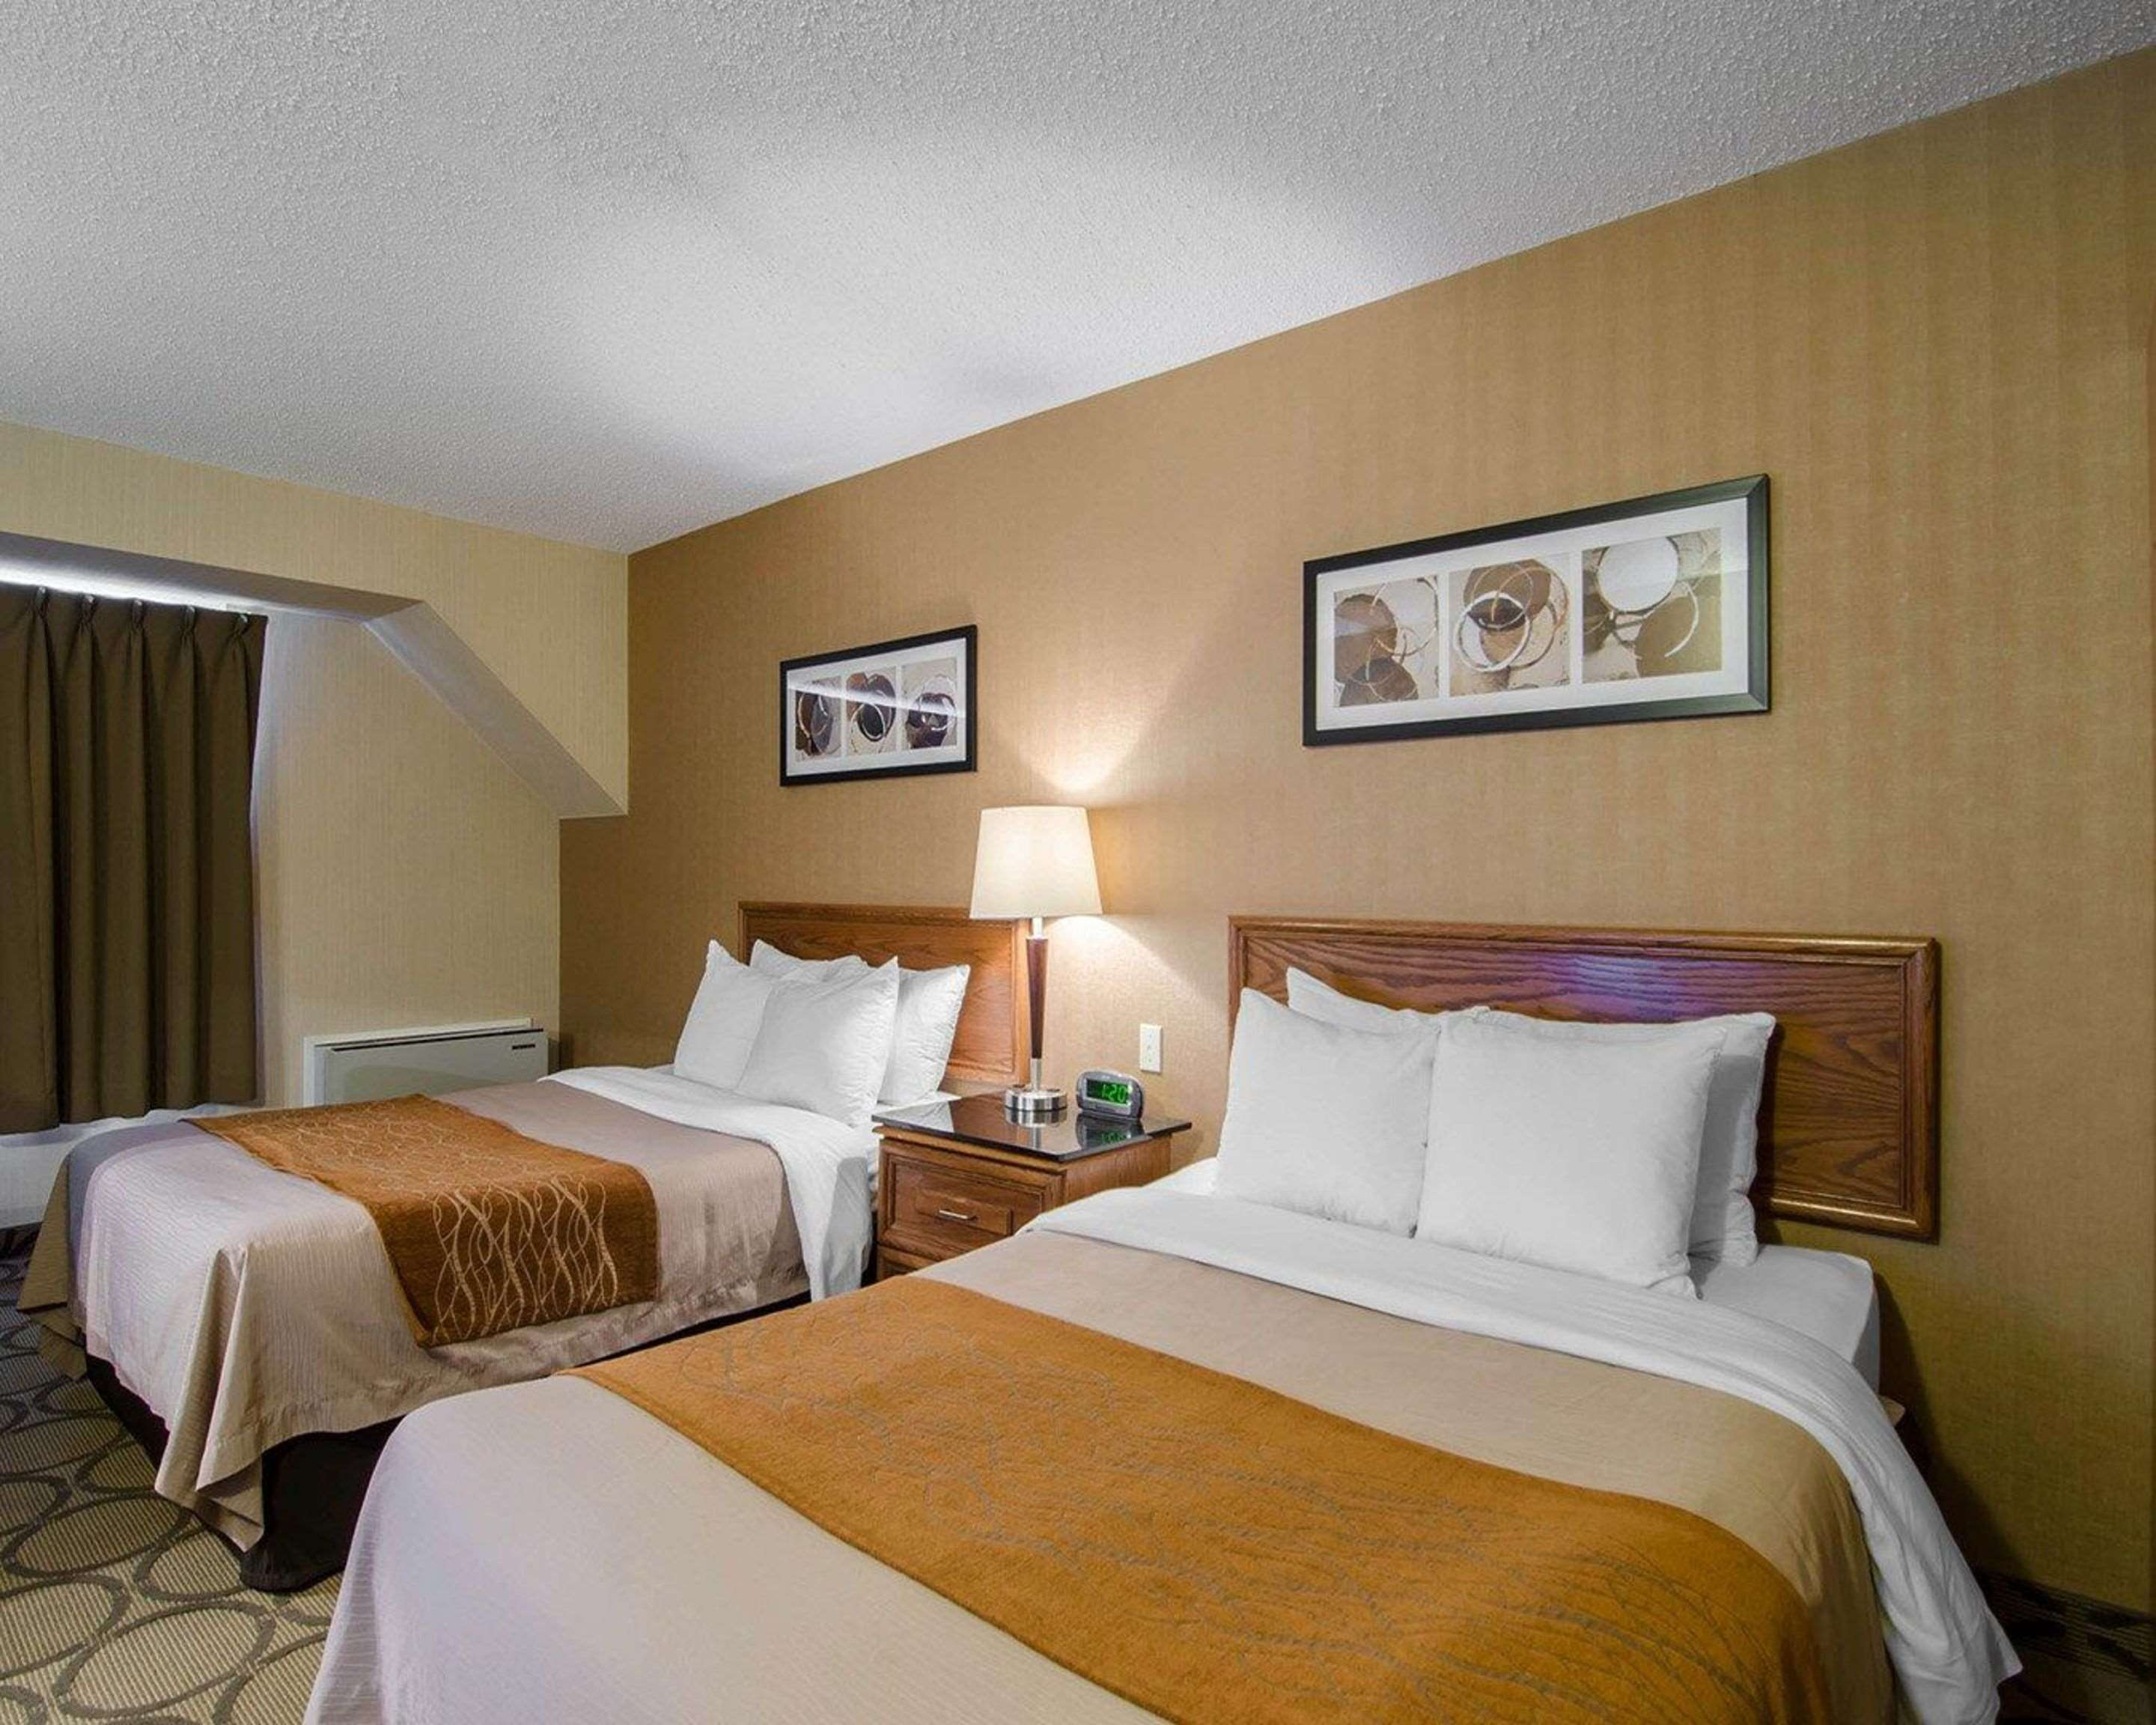 Comfort Inn in Saskatoon: Guest room with queen beds